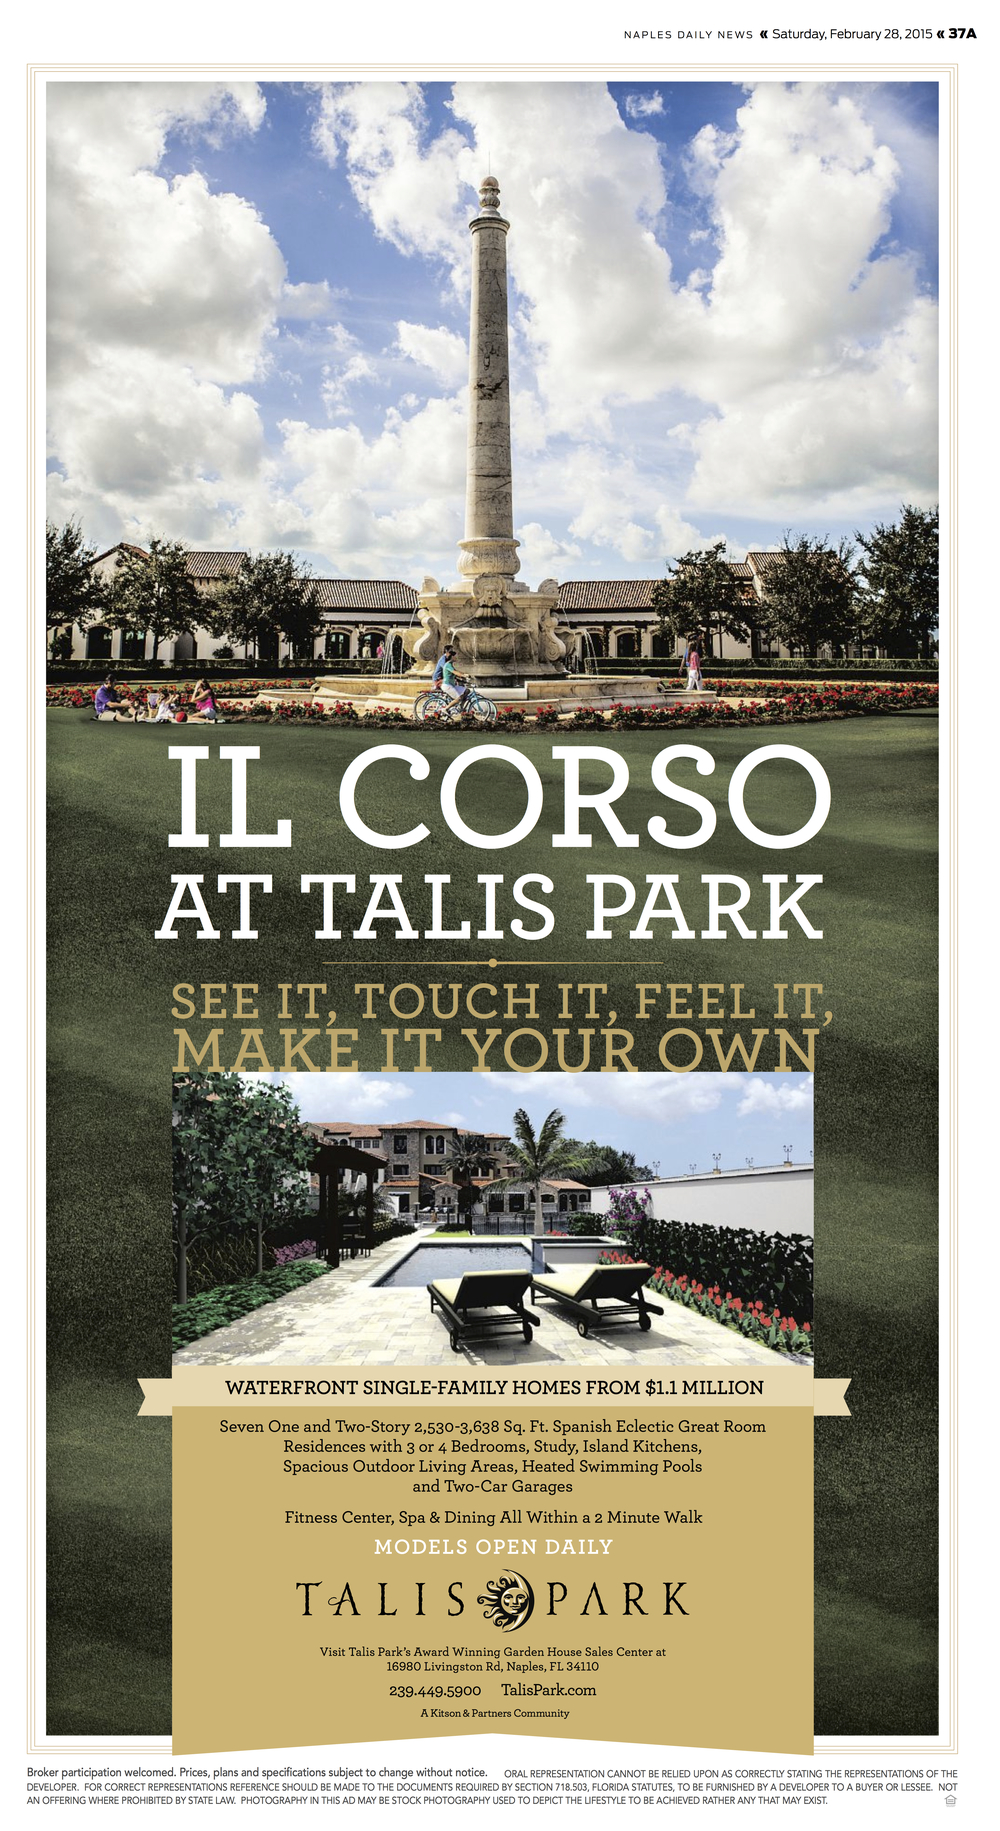 GOOD 2-28-15 - Sat - Il Corso at Talis Park Full Page Ad.jpg